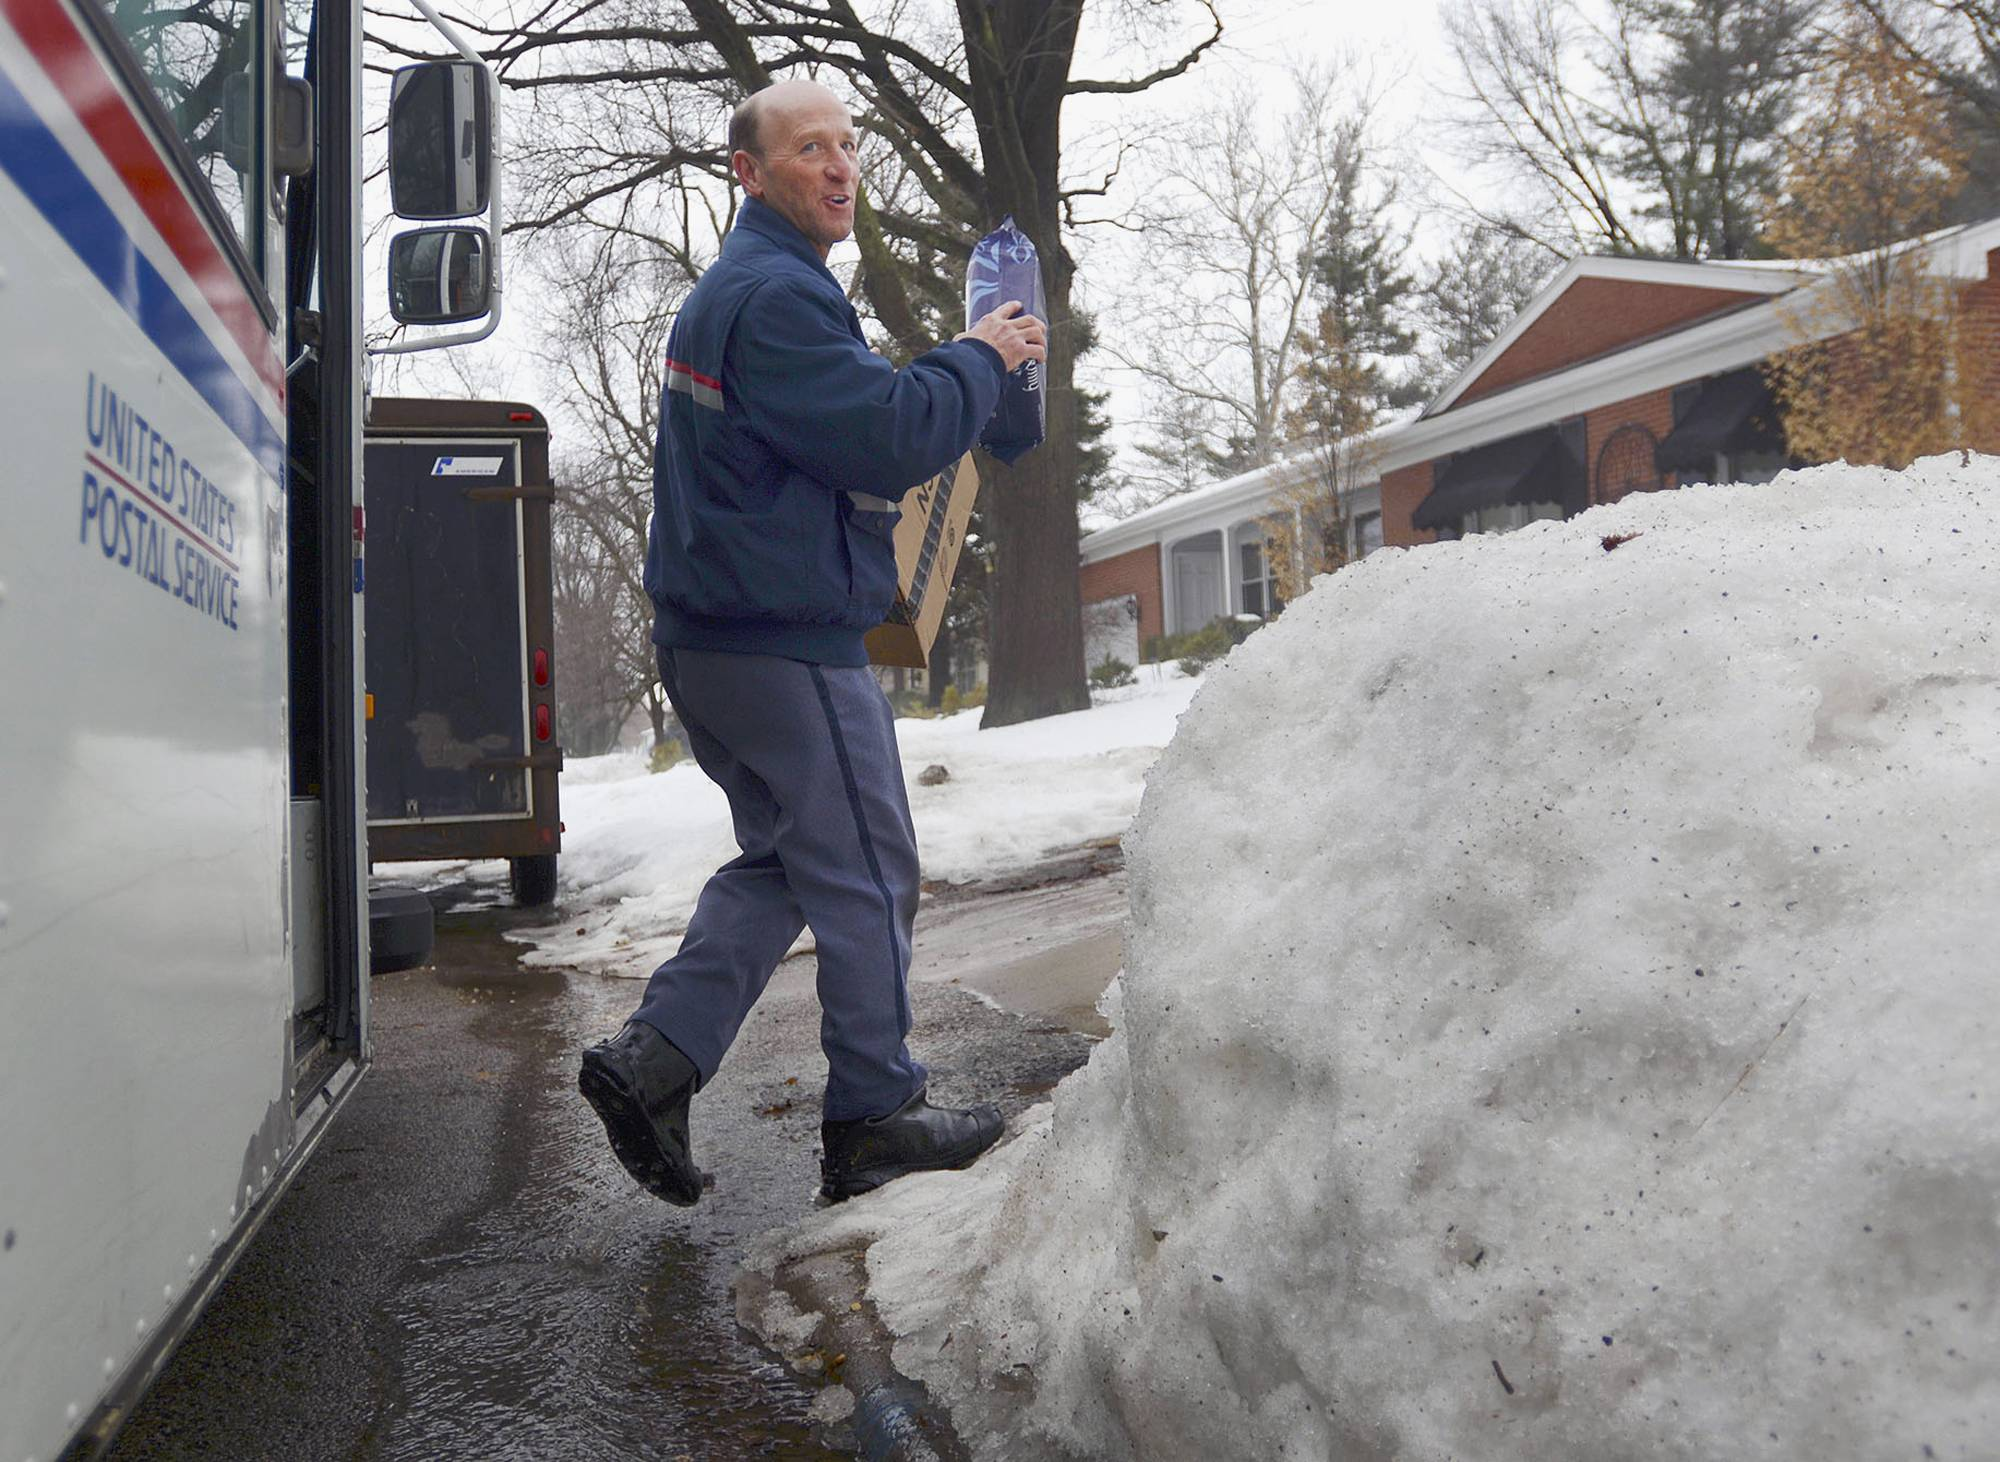 U.S. Postal Service letter carrier Gary Keist prepares to make a delivery to a home in Normal, Ill. Keist, 56, began as a letter carrier in 1978 and said this winter is the worst he's ever worked because of the consistent pattern of snowfalls followed by bitterly cold temperatures with little or no break.